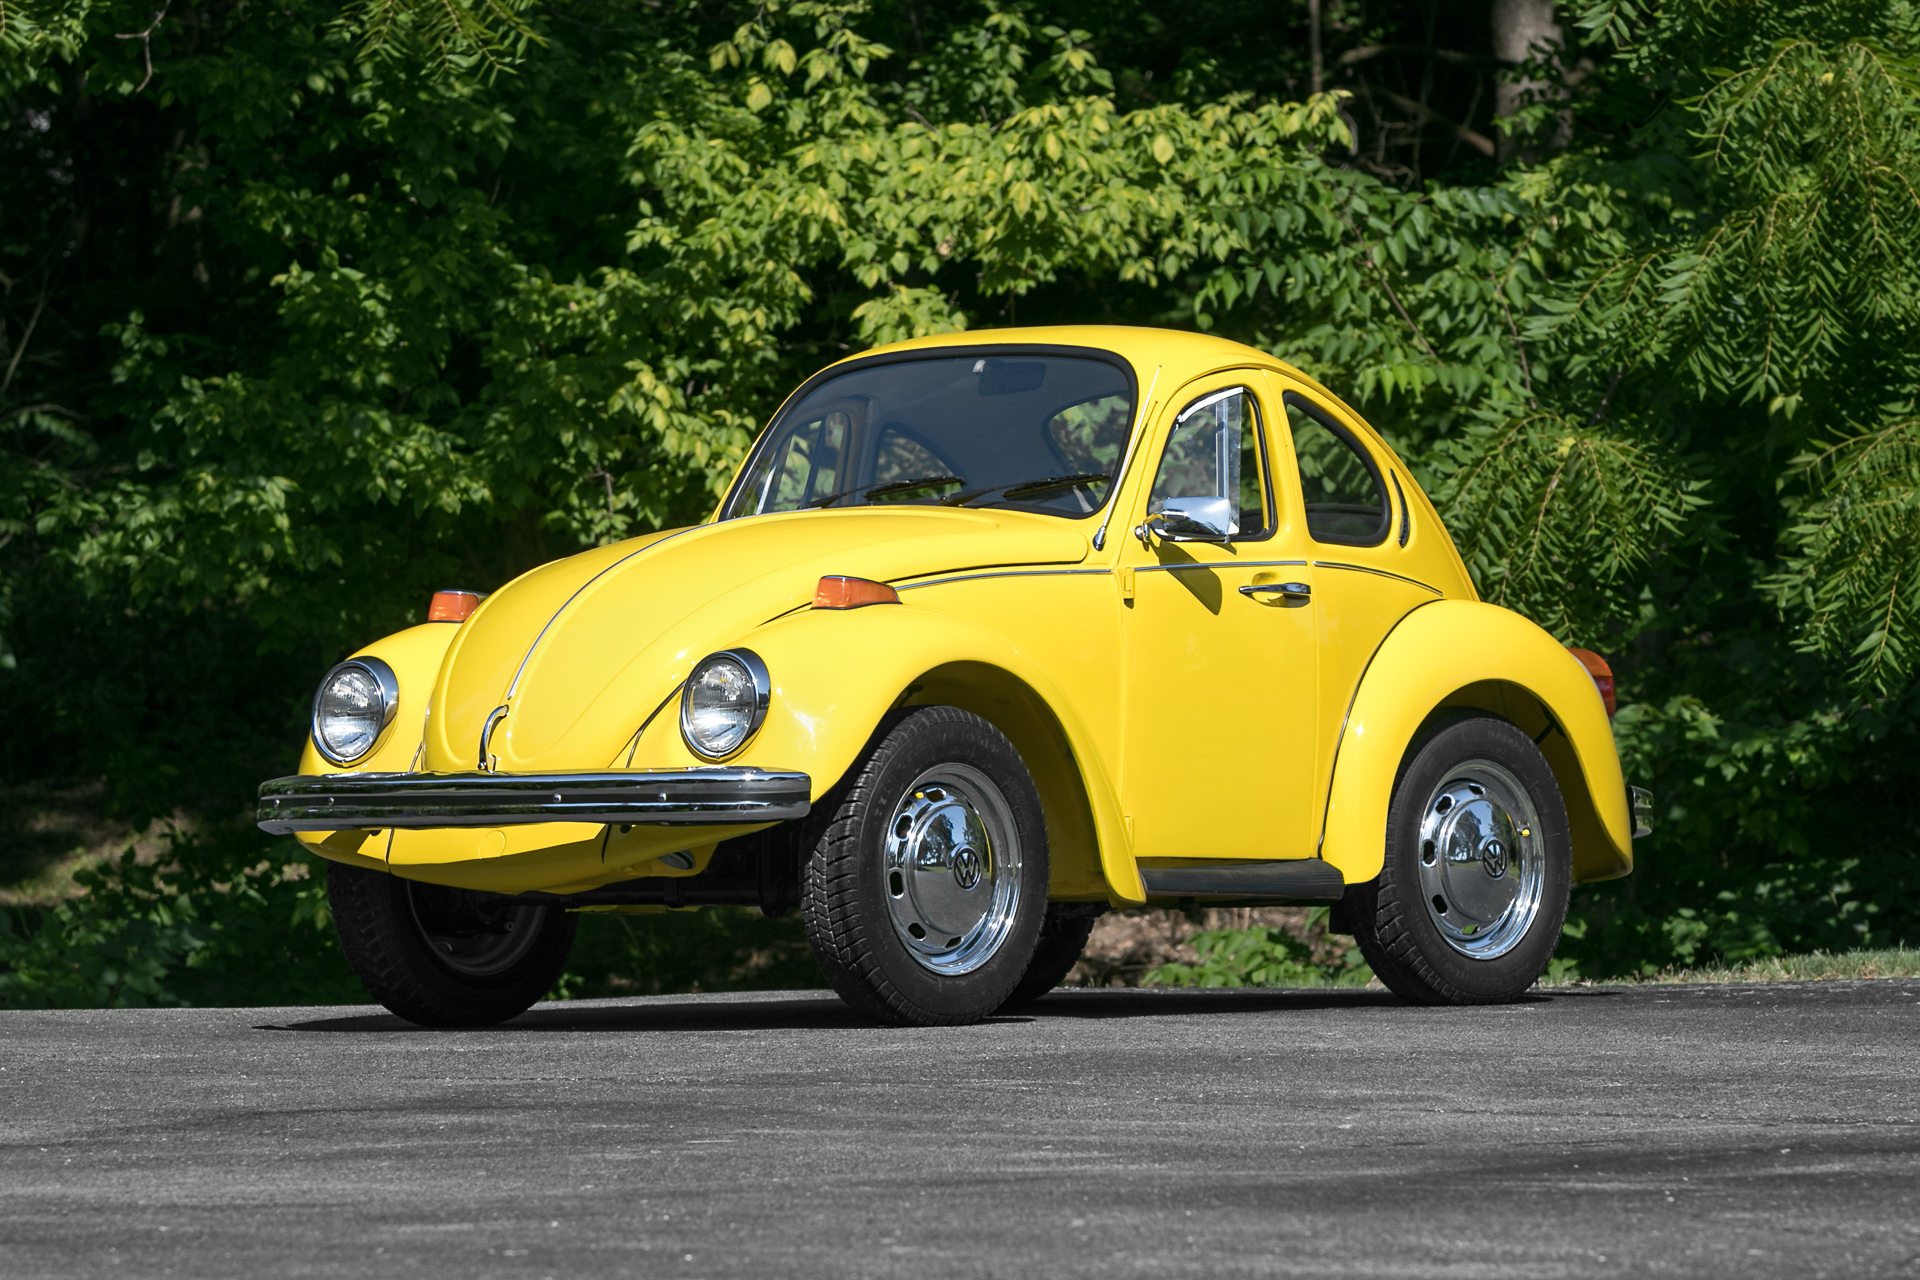 1974 volkswagen beetle fast lane classic cars. Black Bedroom Furniture Sets. Home Design Ideas